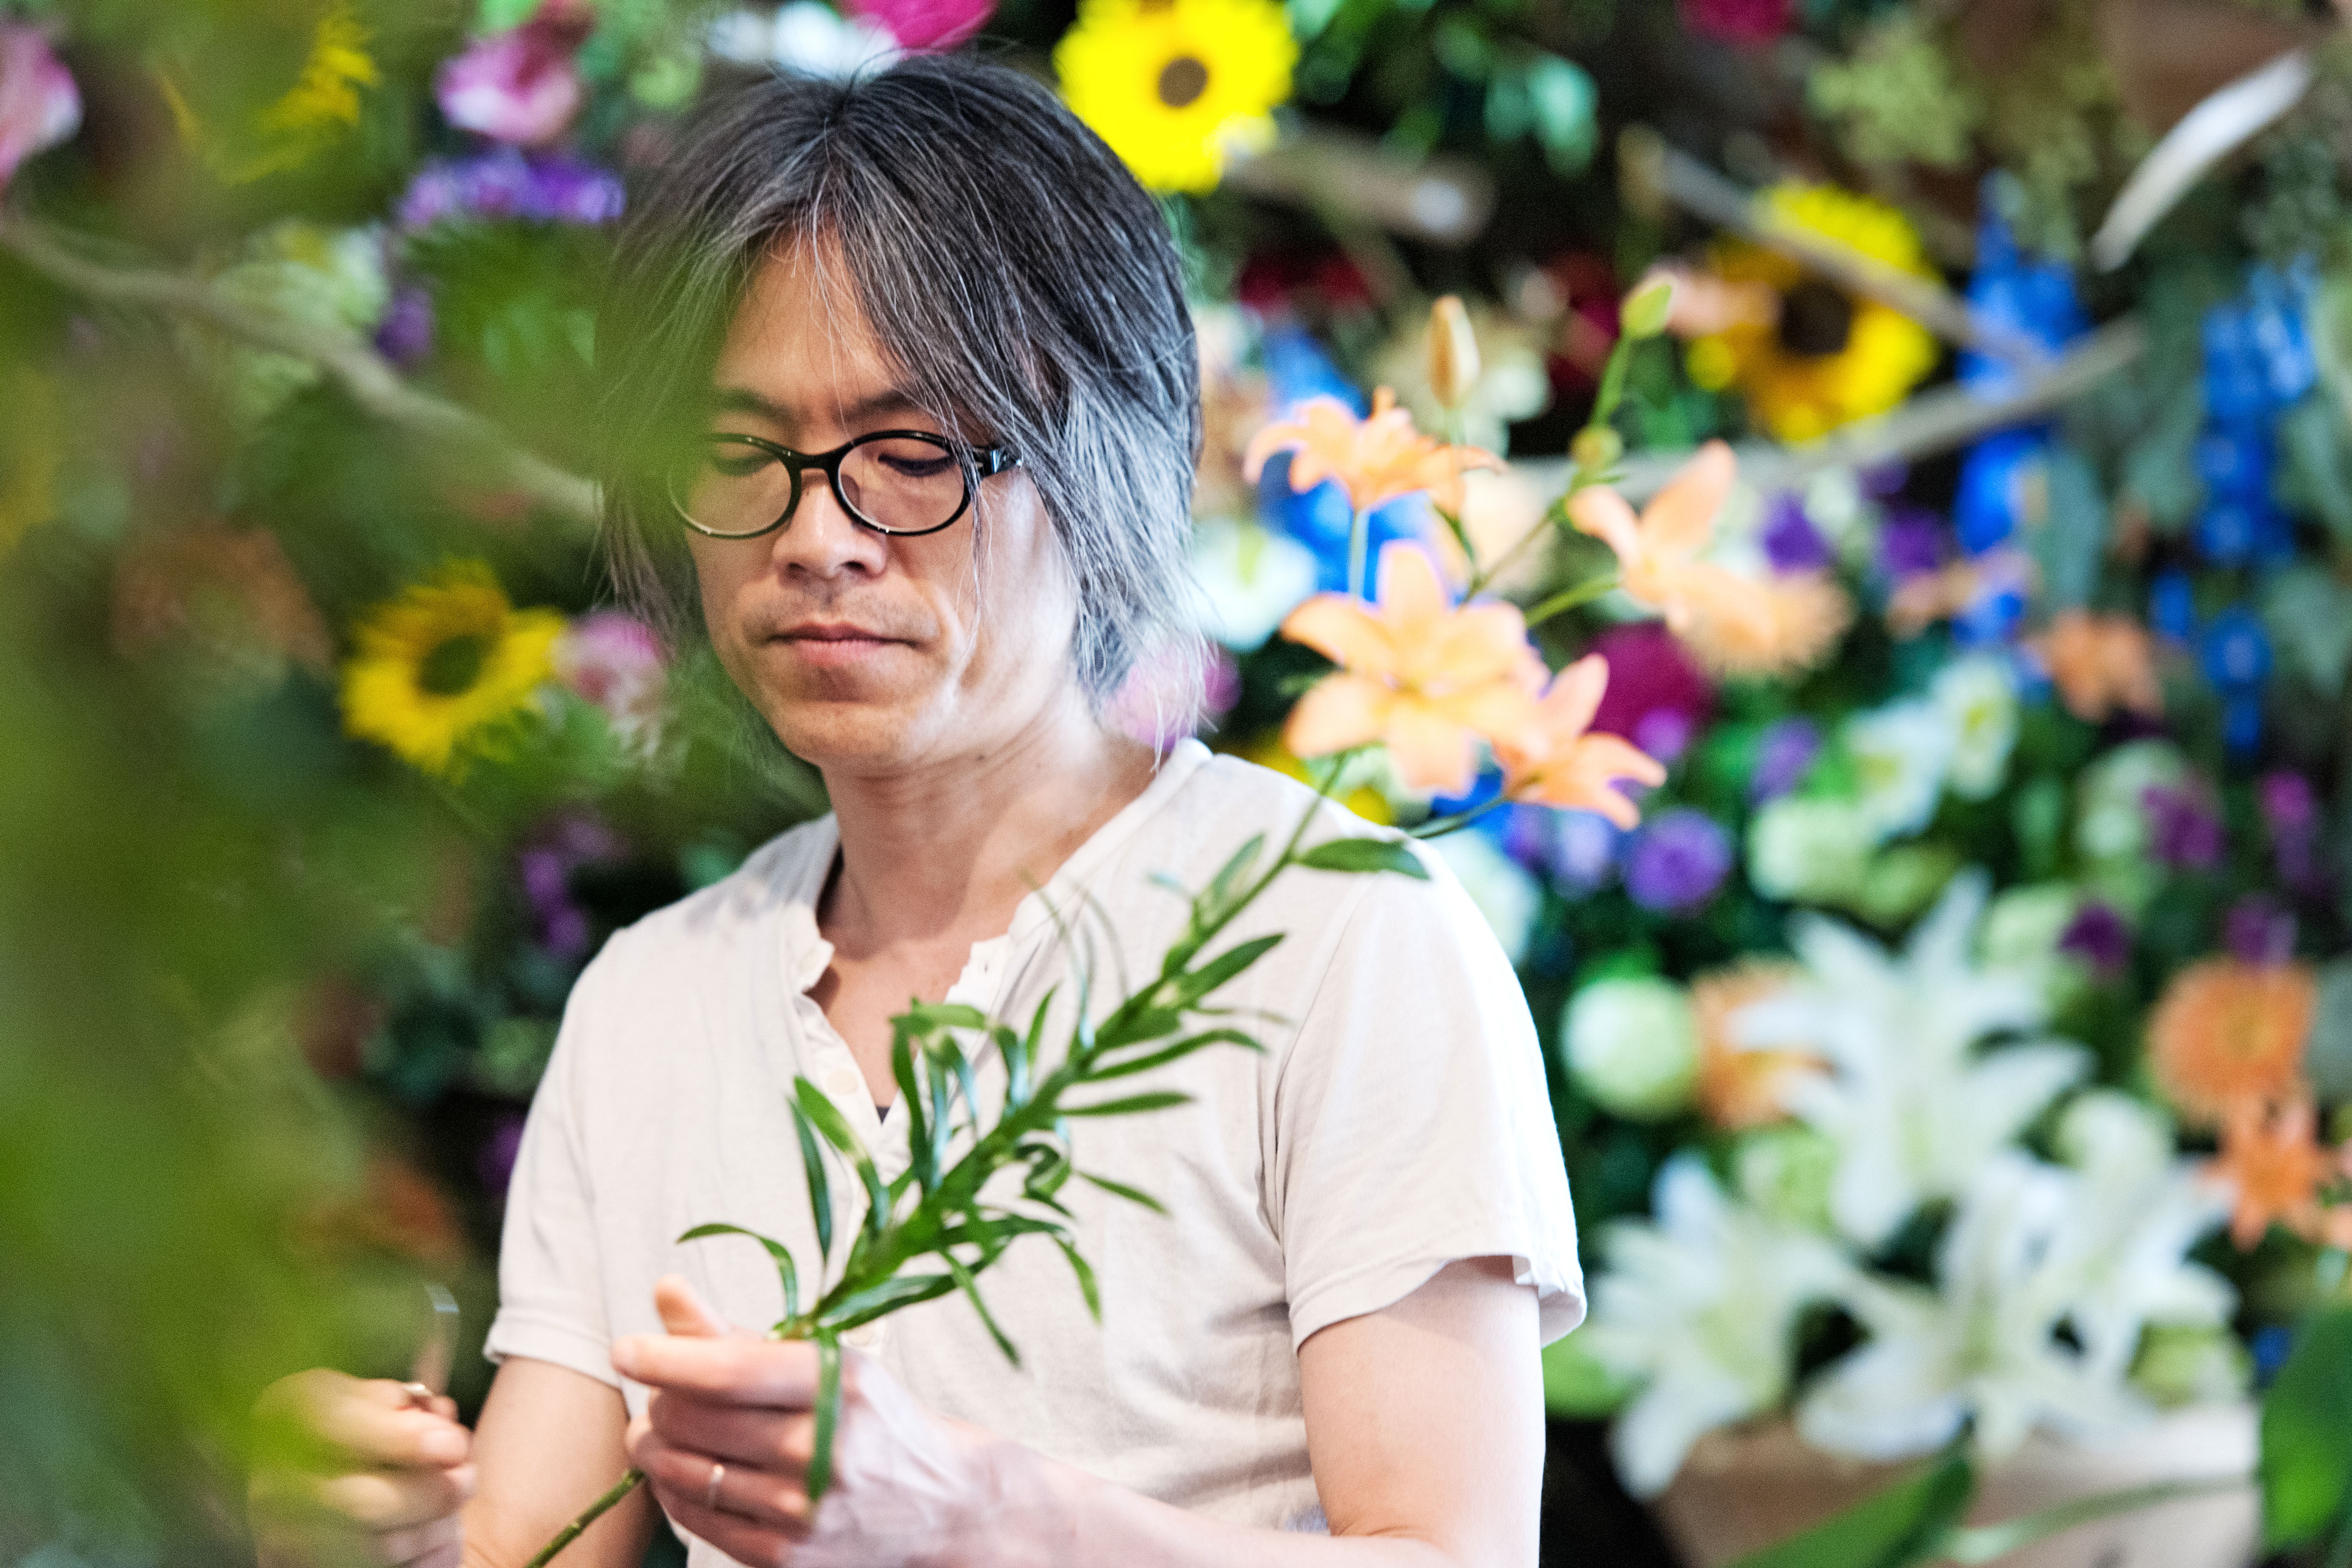 An older person wearing eye glasses concentrates while holding flowers in a floral shop